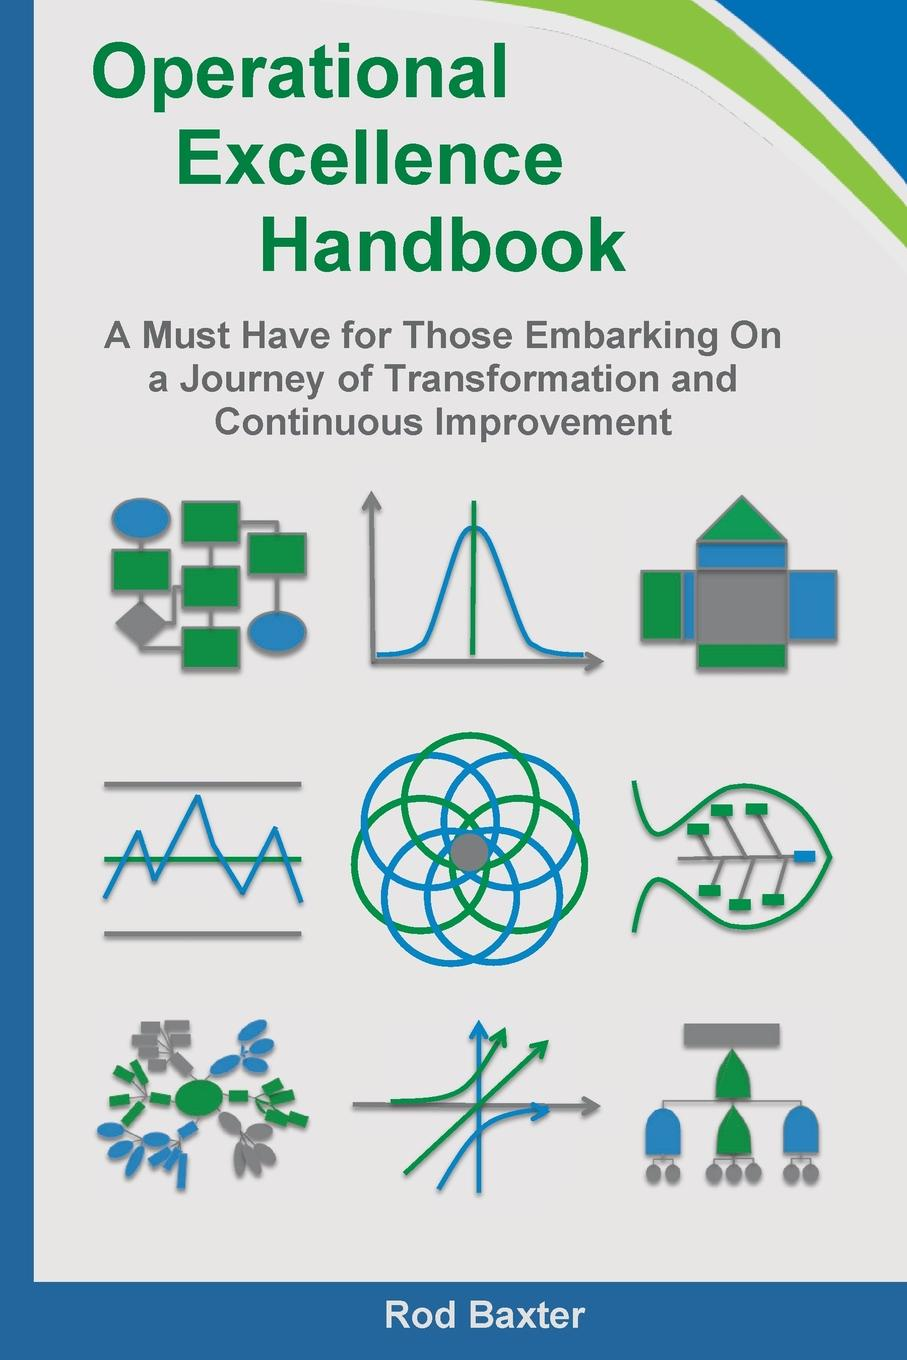 Rod Baxter Operational Excellence Handbook. A Must Have for Those Embarking On a Journey of Transformation and Continuous Improvement sherwyn morreale building the high trust organization strategies for supporting five key dimensions of trust